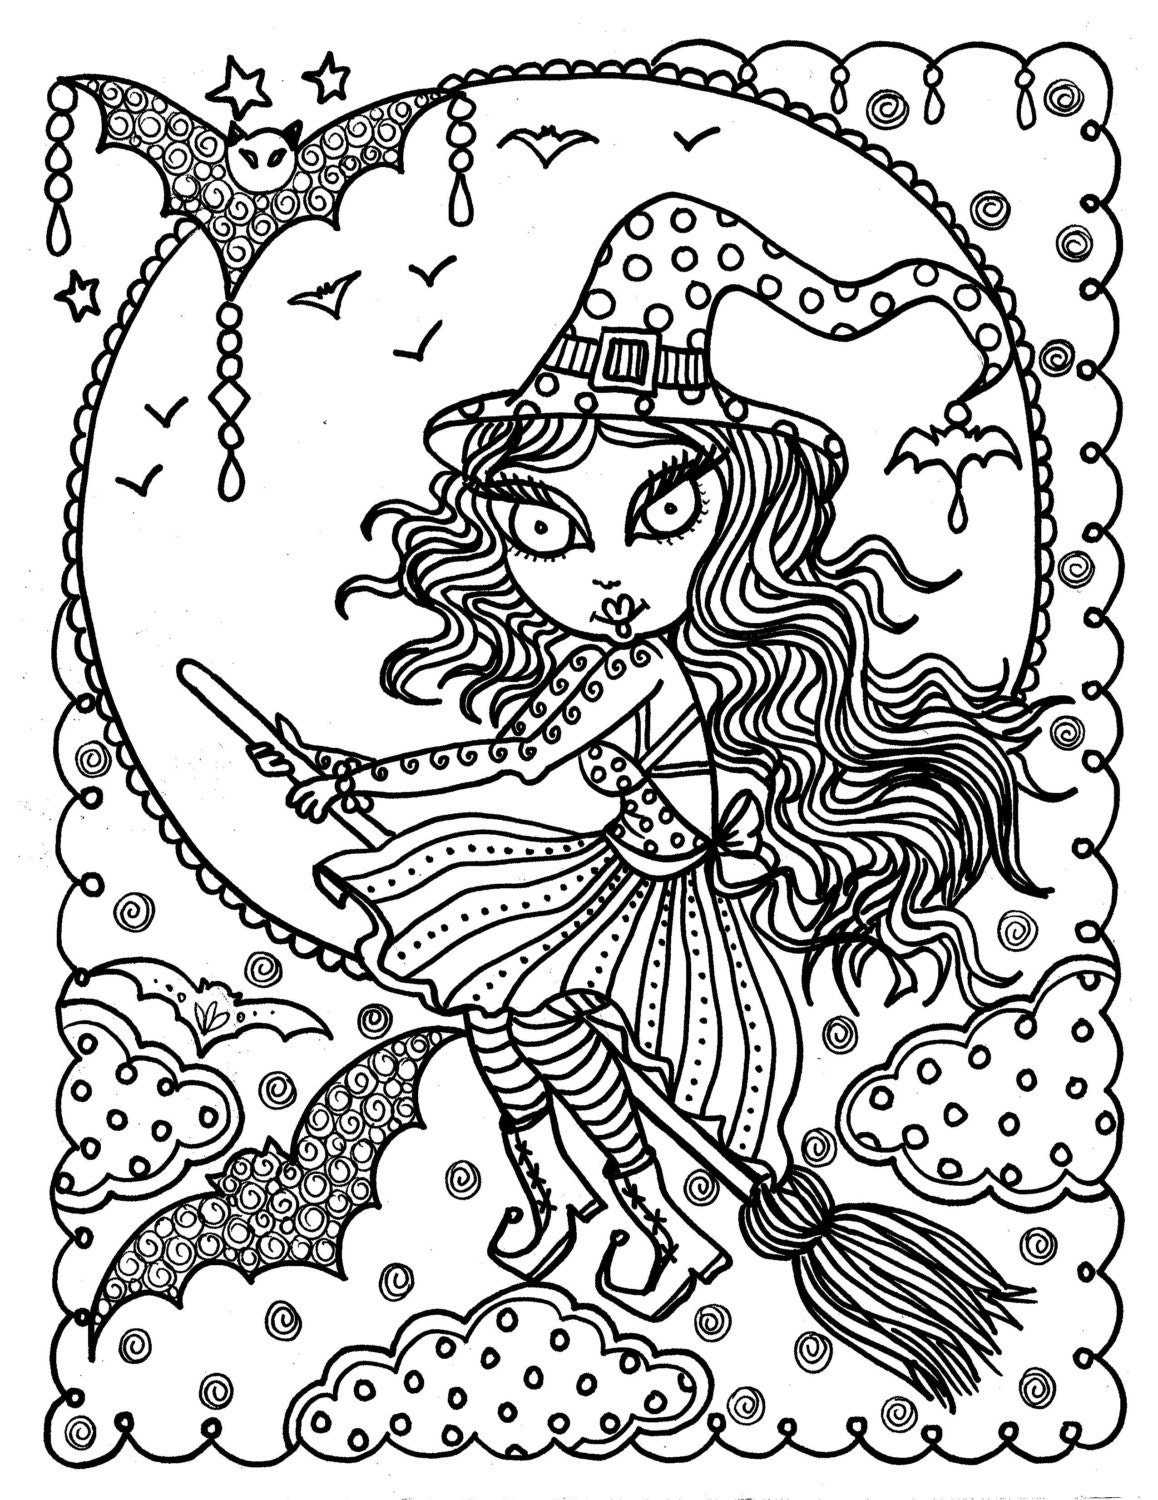 Cute Witch Halloween coloring page Fun Coloring Instant | Etsy